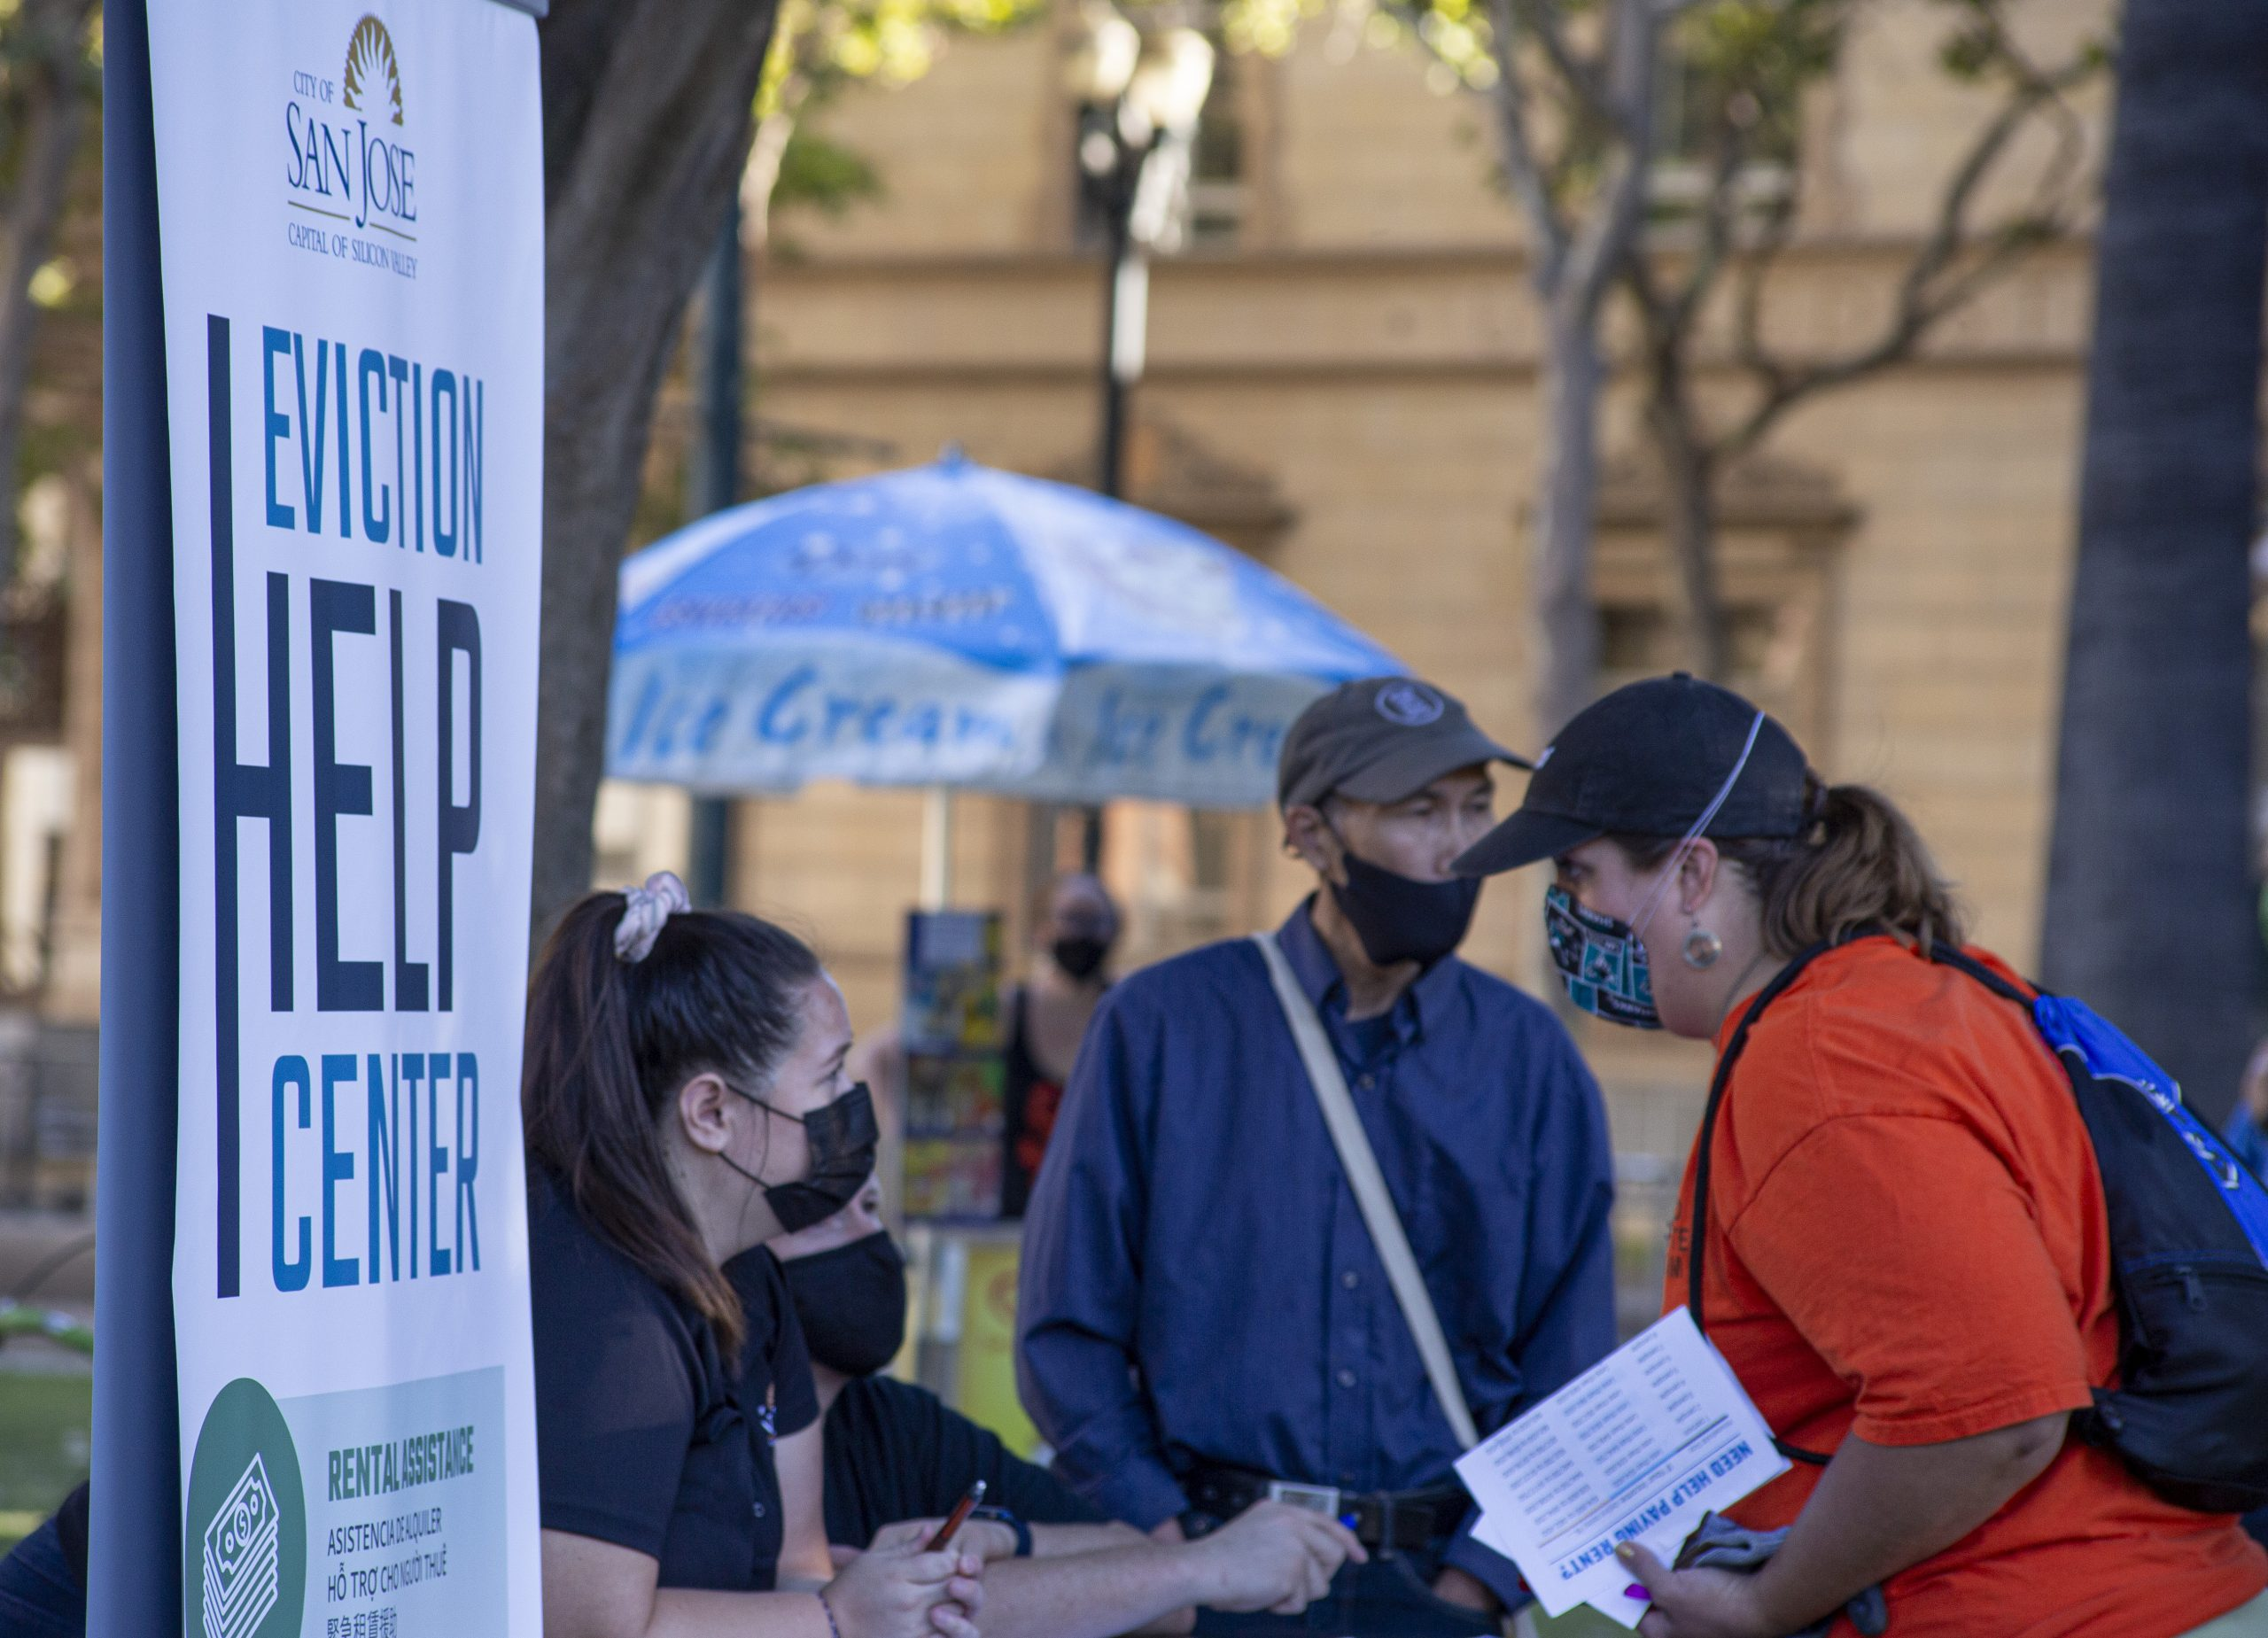 Residents urged to apply for rent, utility relief ahead of eviction moratorium's end